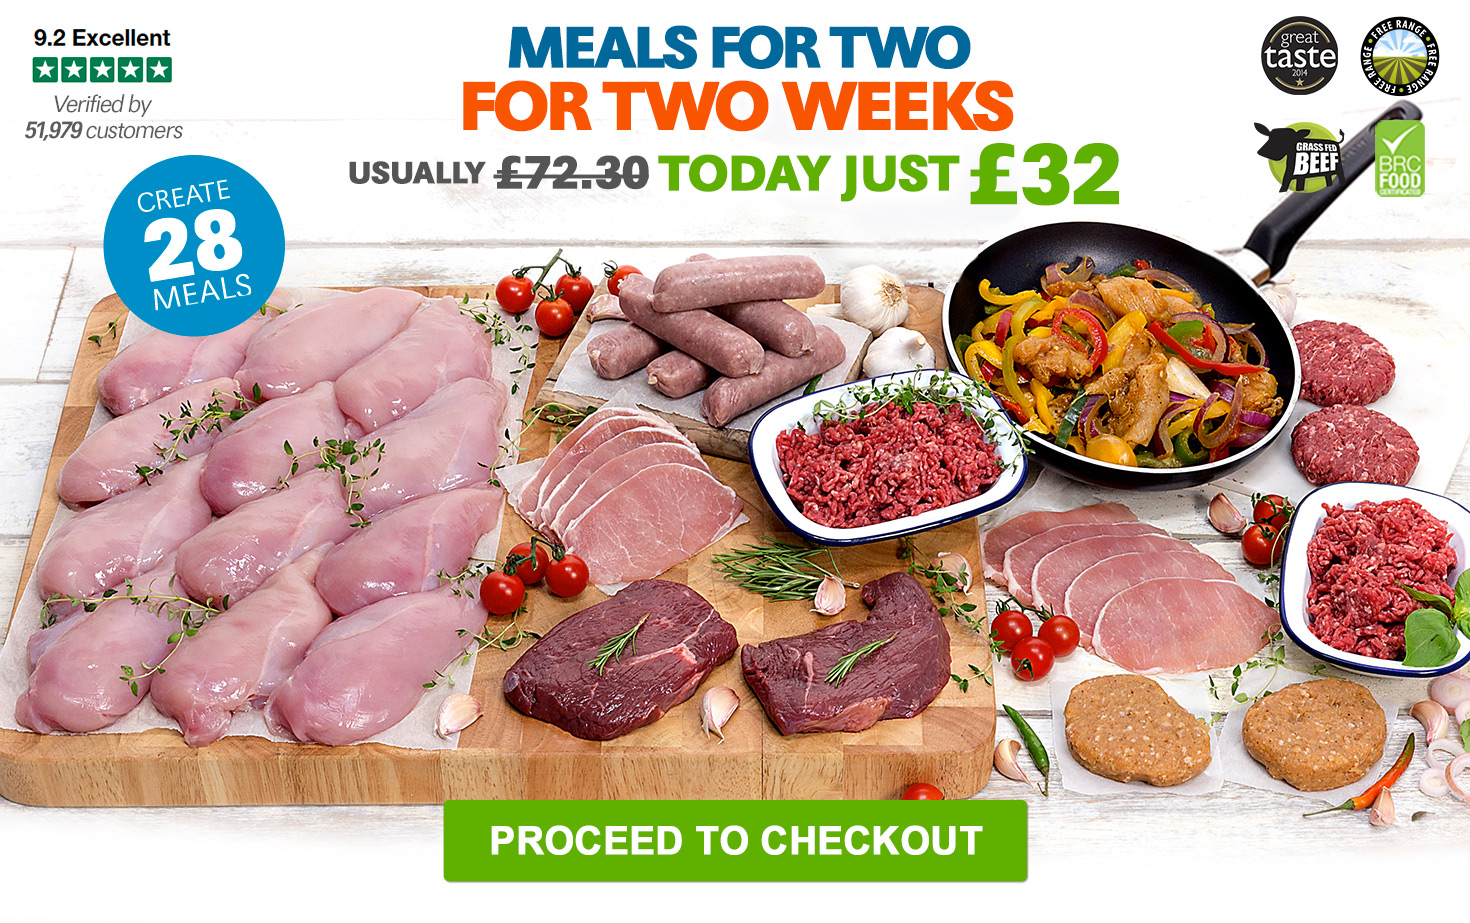 Groupon Meals For Two